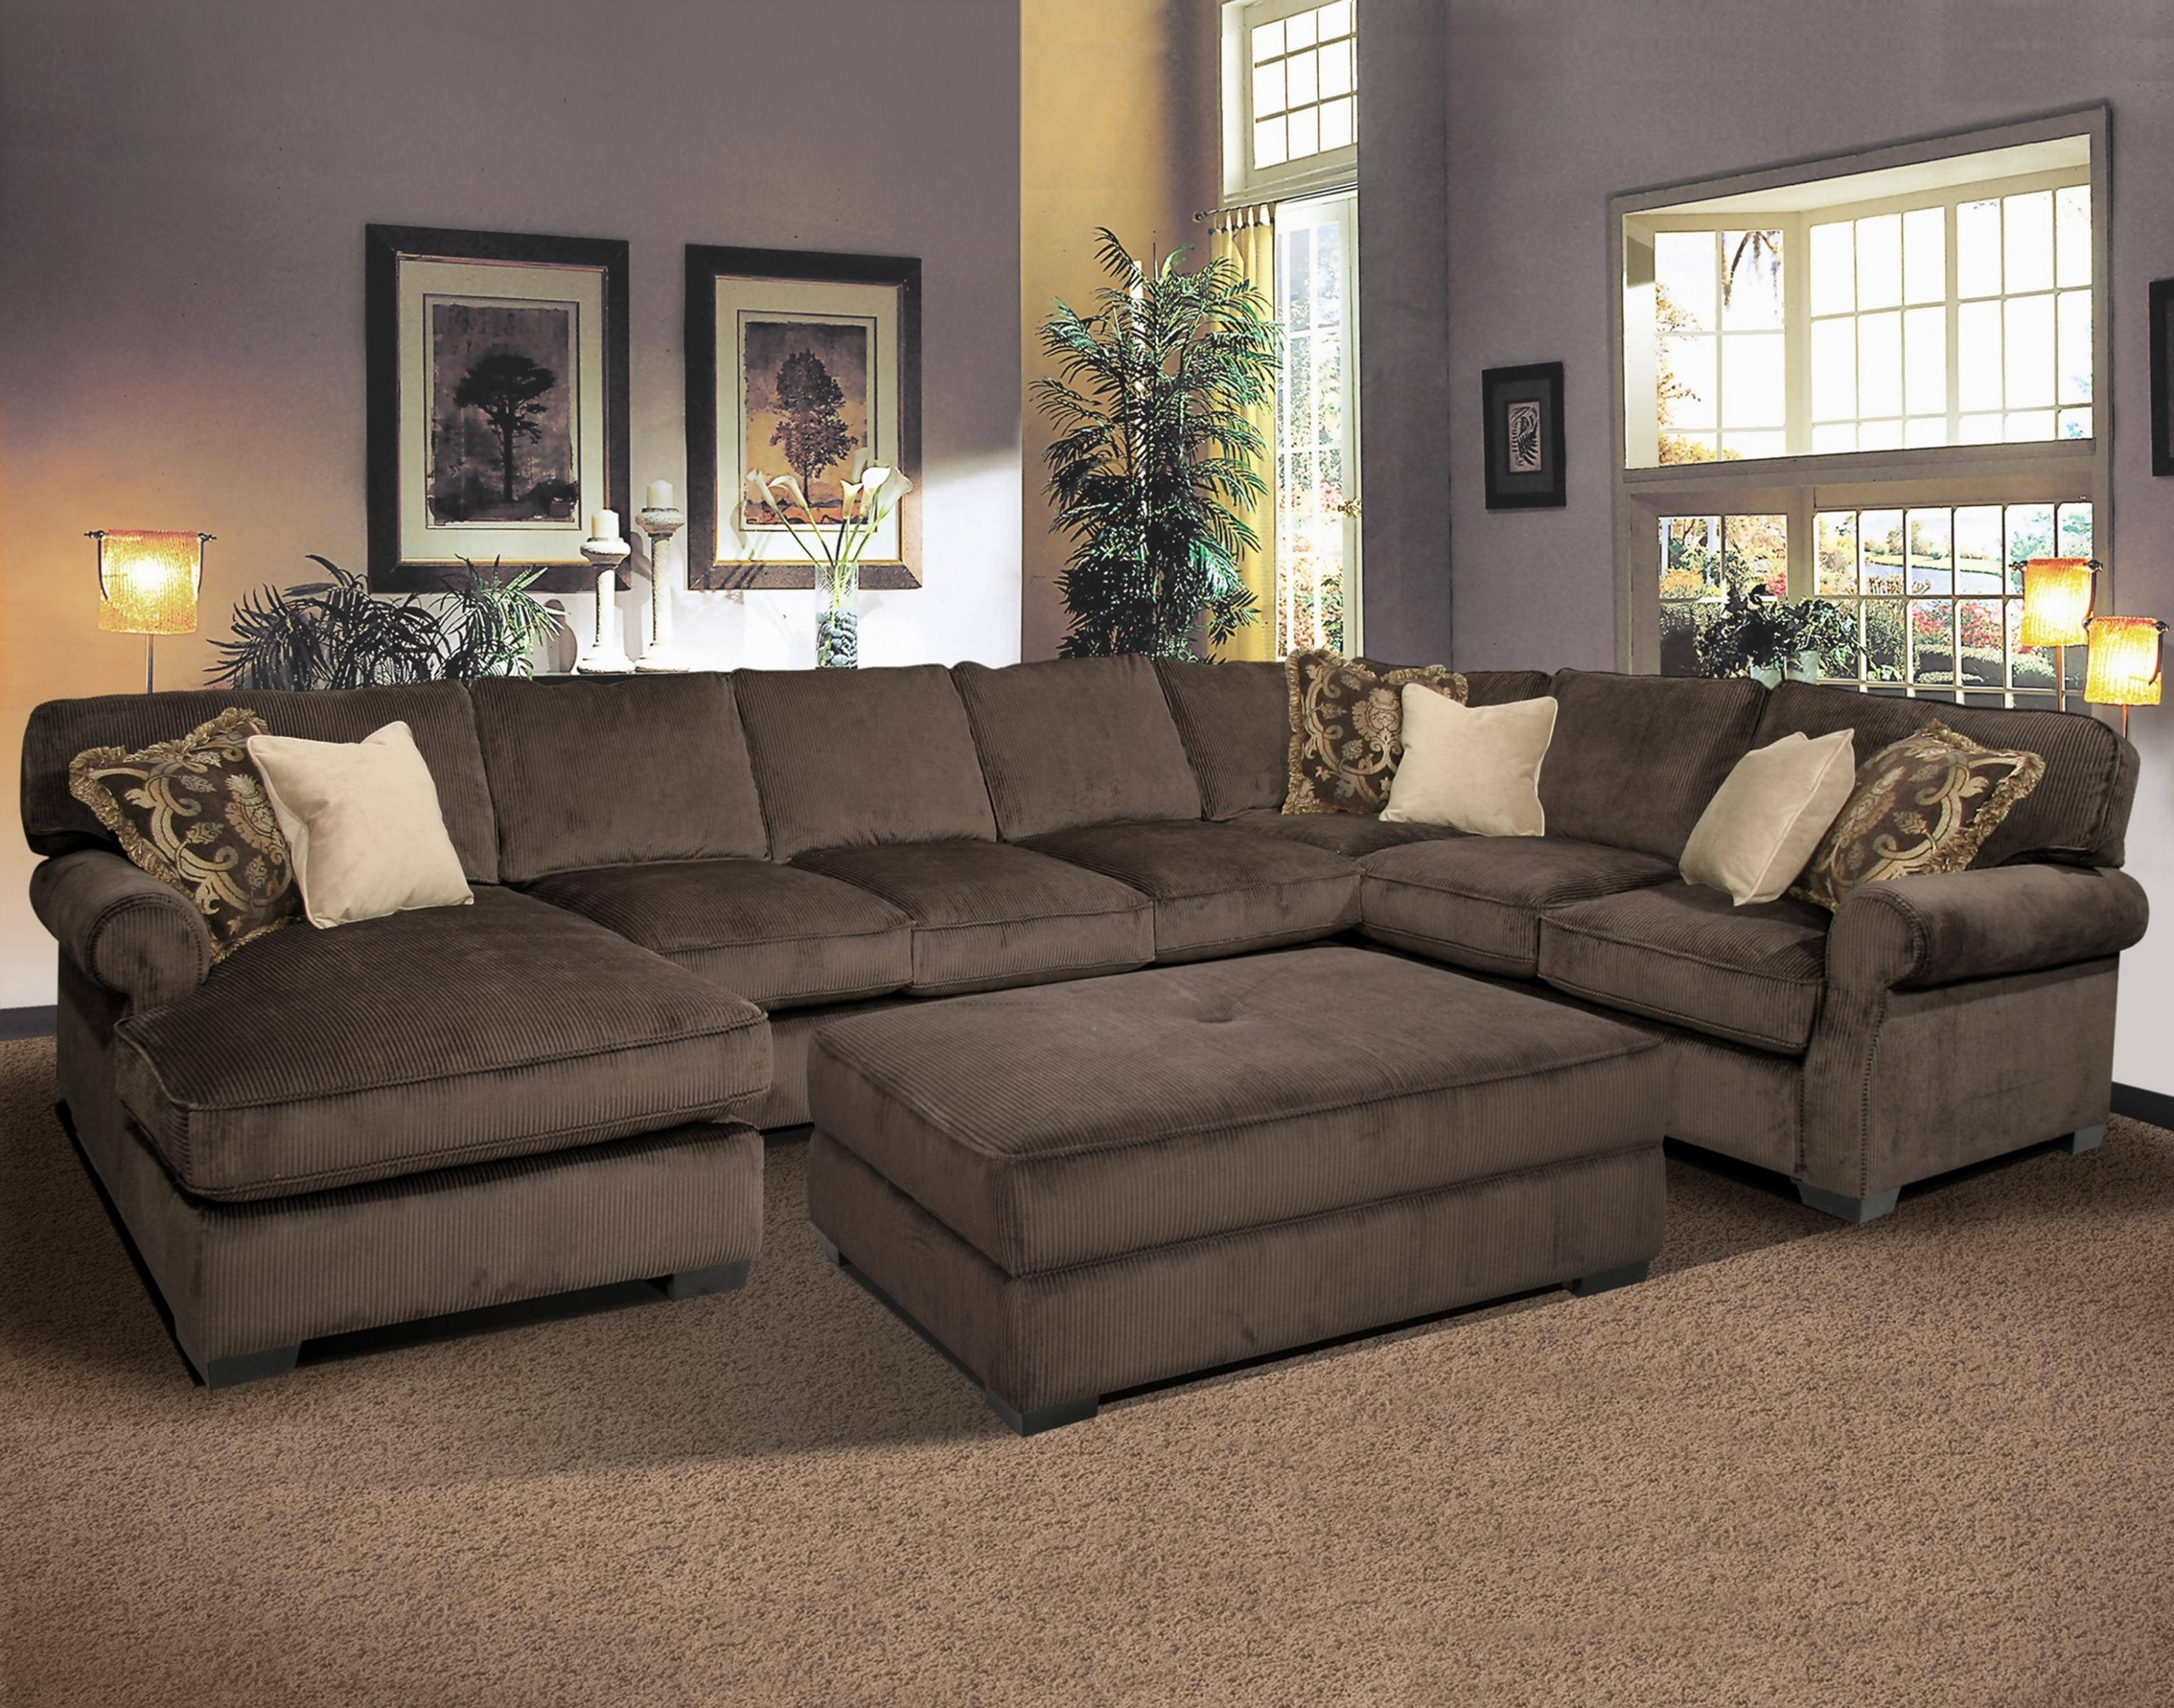 Austin Sectional Sofas Pertaining To Trendy Sectional Sofas Austin Tx – Leather Sectional Sofa Intended For (View 6 of 20)